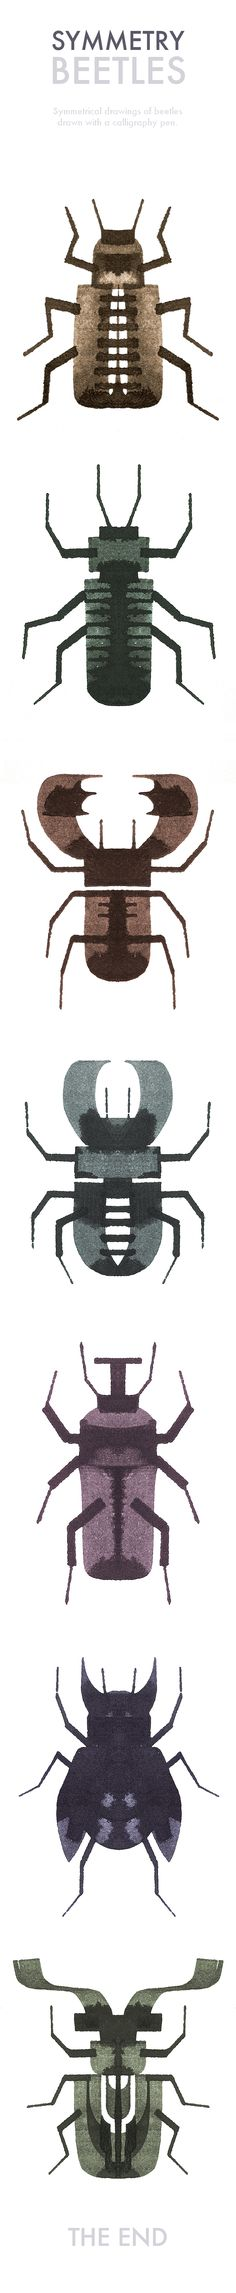 Symmetry Beetles on Behance